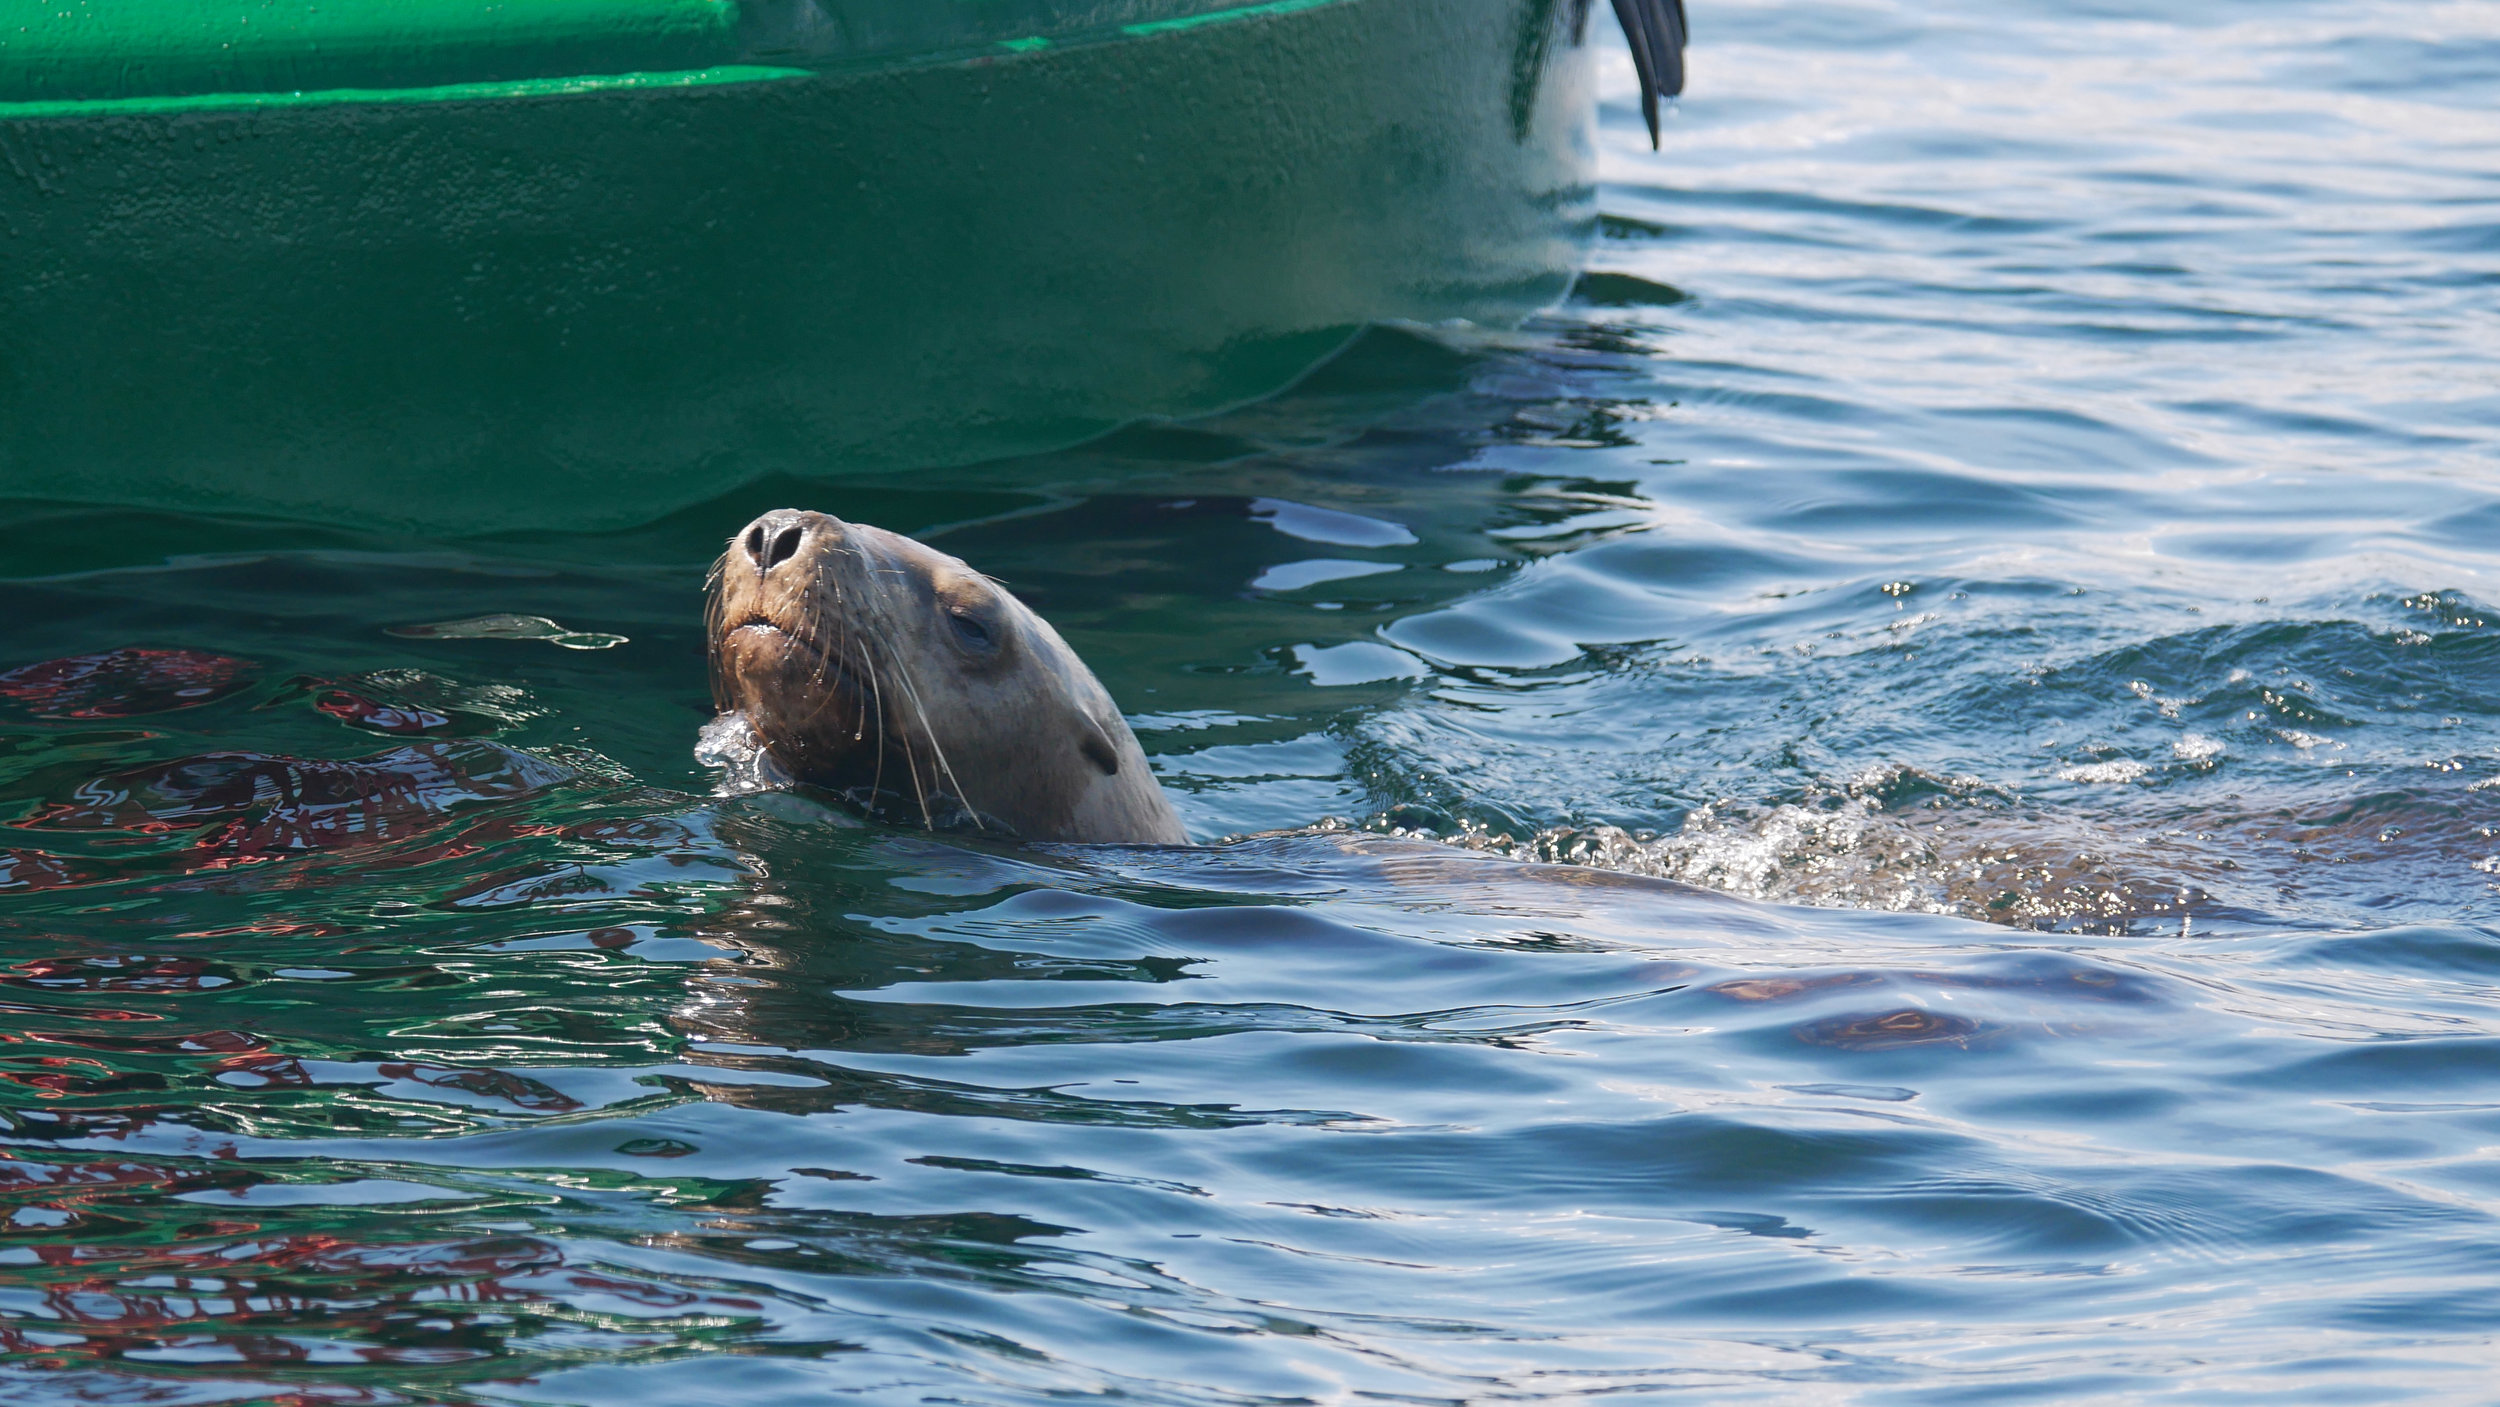 Steller sea lion swimming up to the buoy. Photo by Rebeka Pirker